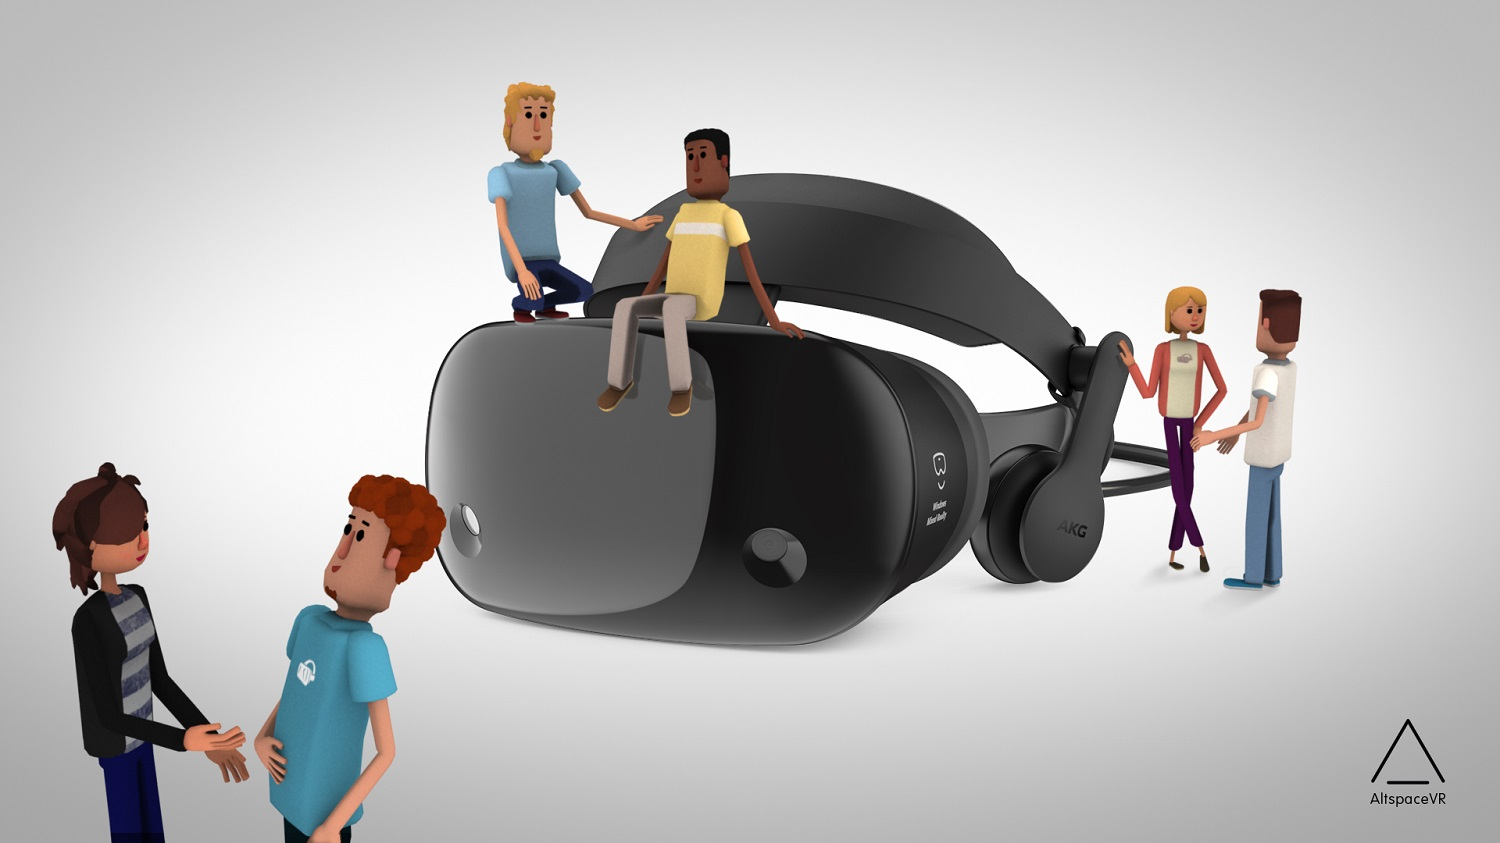 Microsoft Acquires AltspaceVR For Their Upcoming Windows Mixed Reality Platform